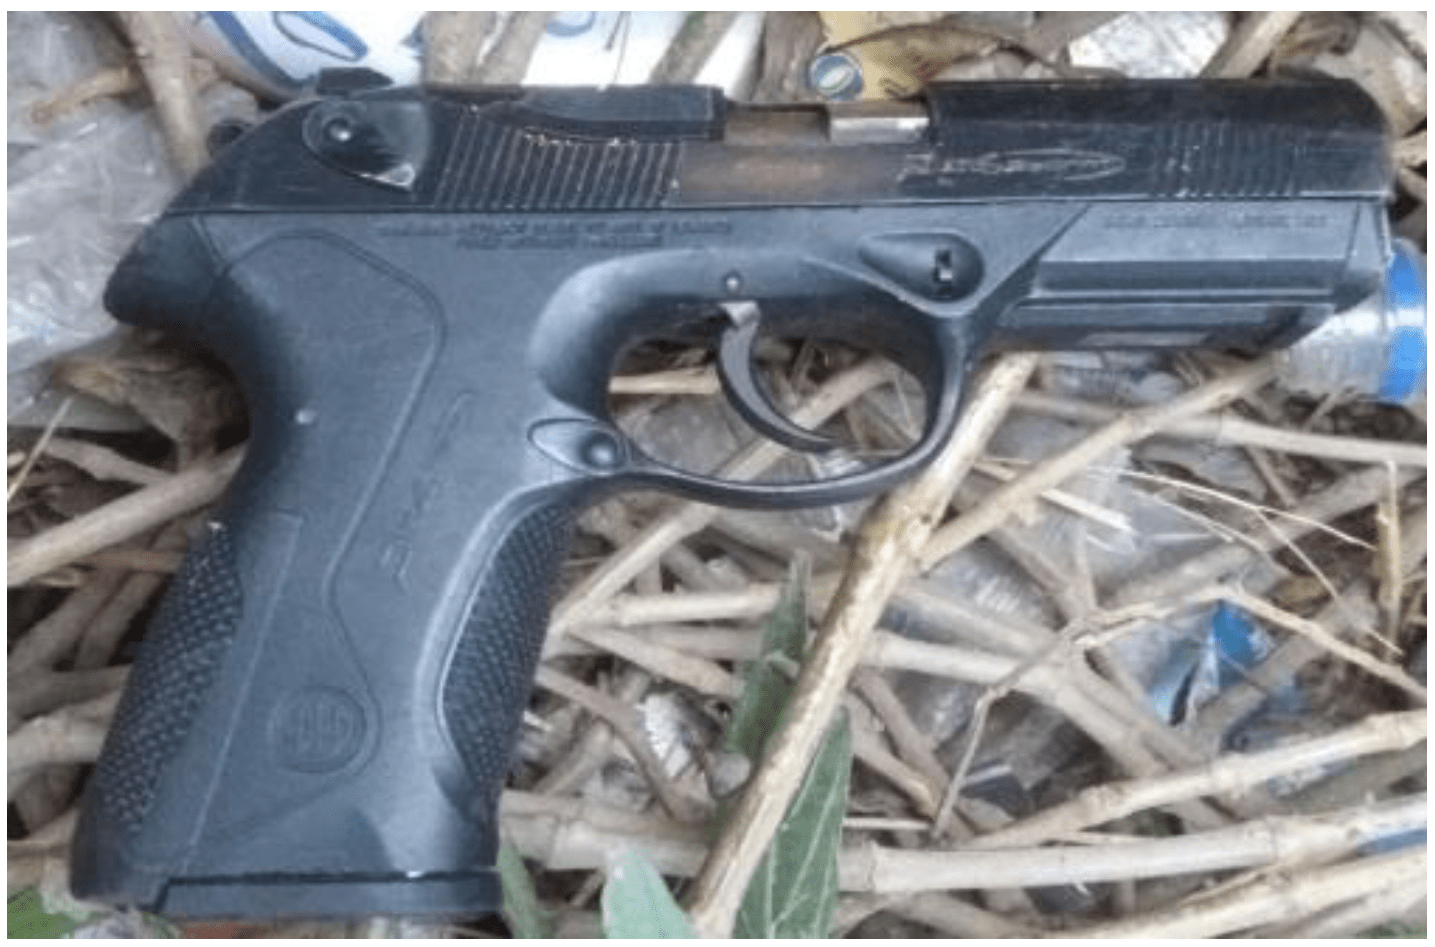 Illegal firearm recovered